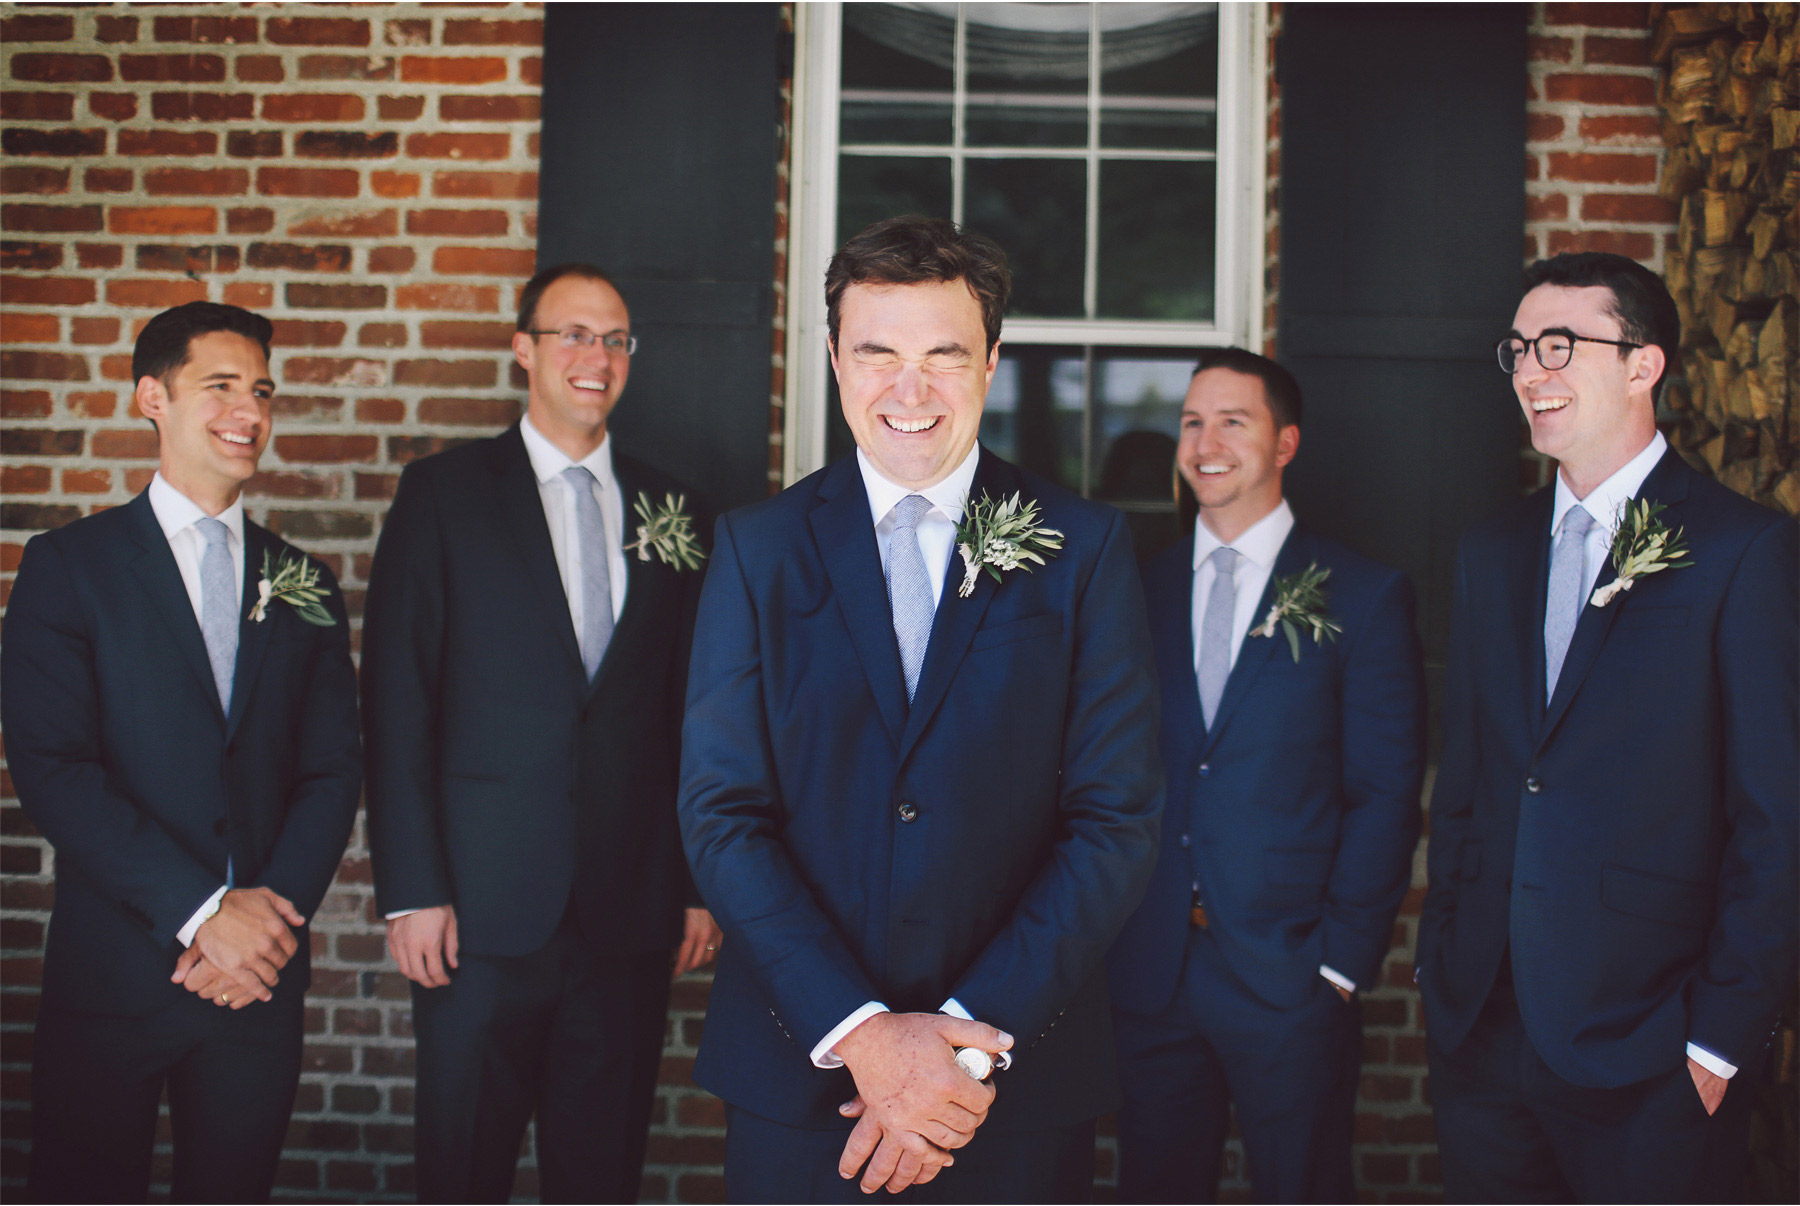 19-Stowe-Vermont-Wedding-Photography-by-Vick-Photography-Edson-Hill-Groomsmen-Mackenzie-and-Jim.jpg